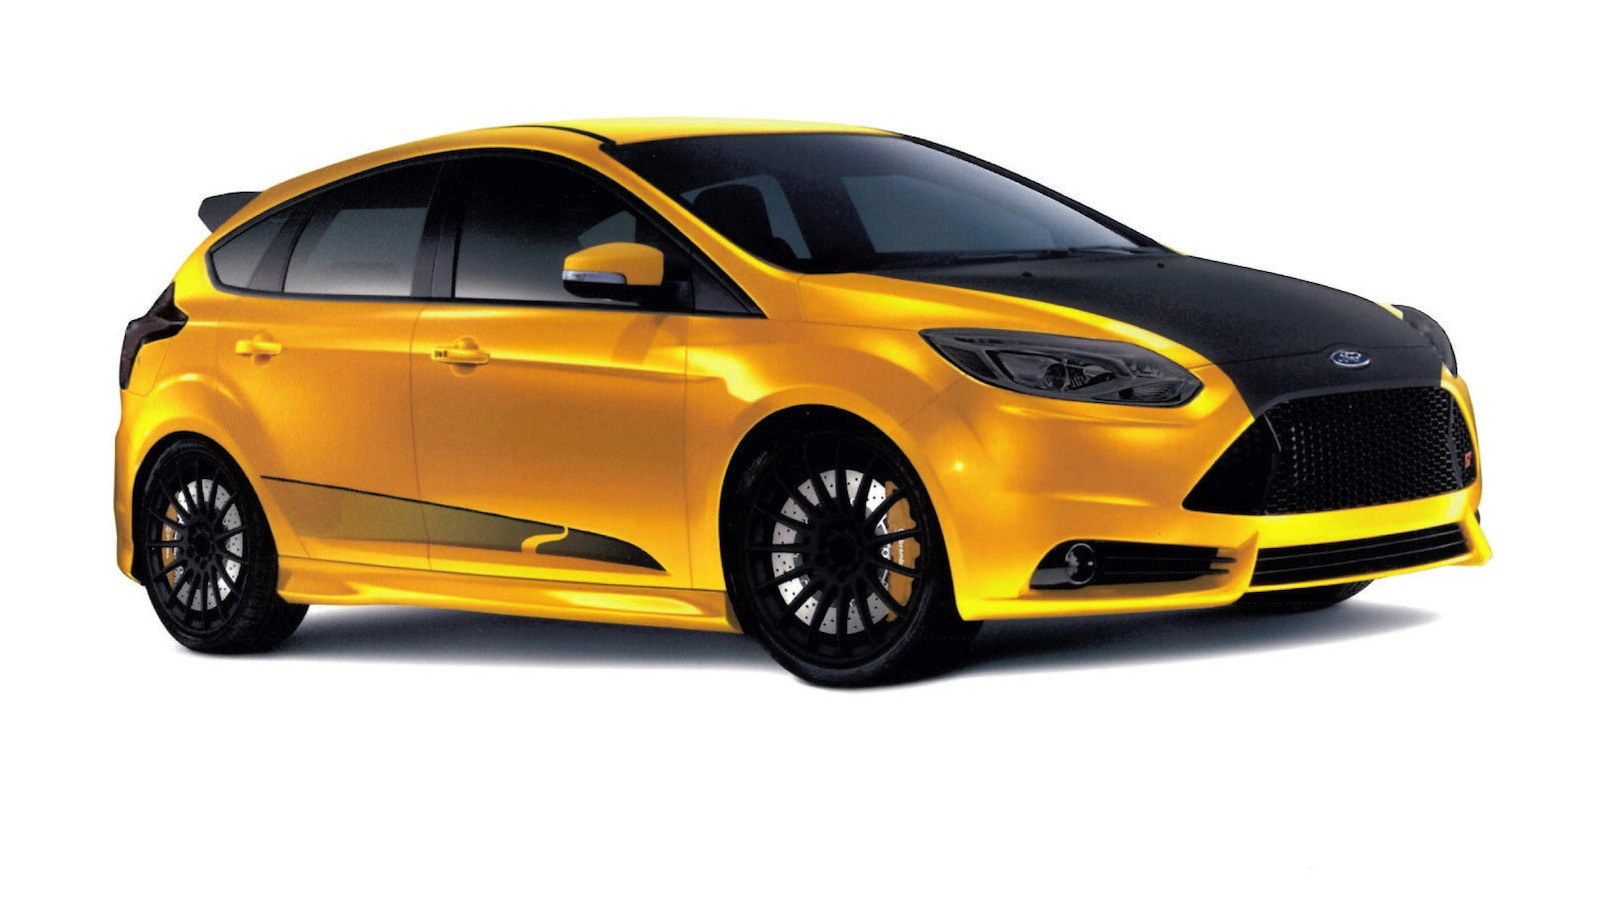 2013 Ford Focus ST built by Steeda for SEMA 2012